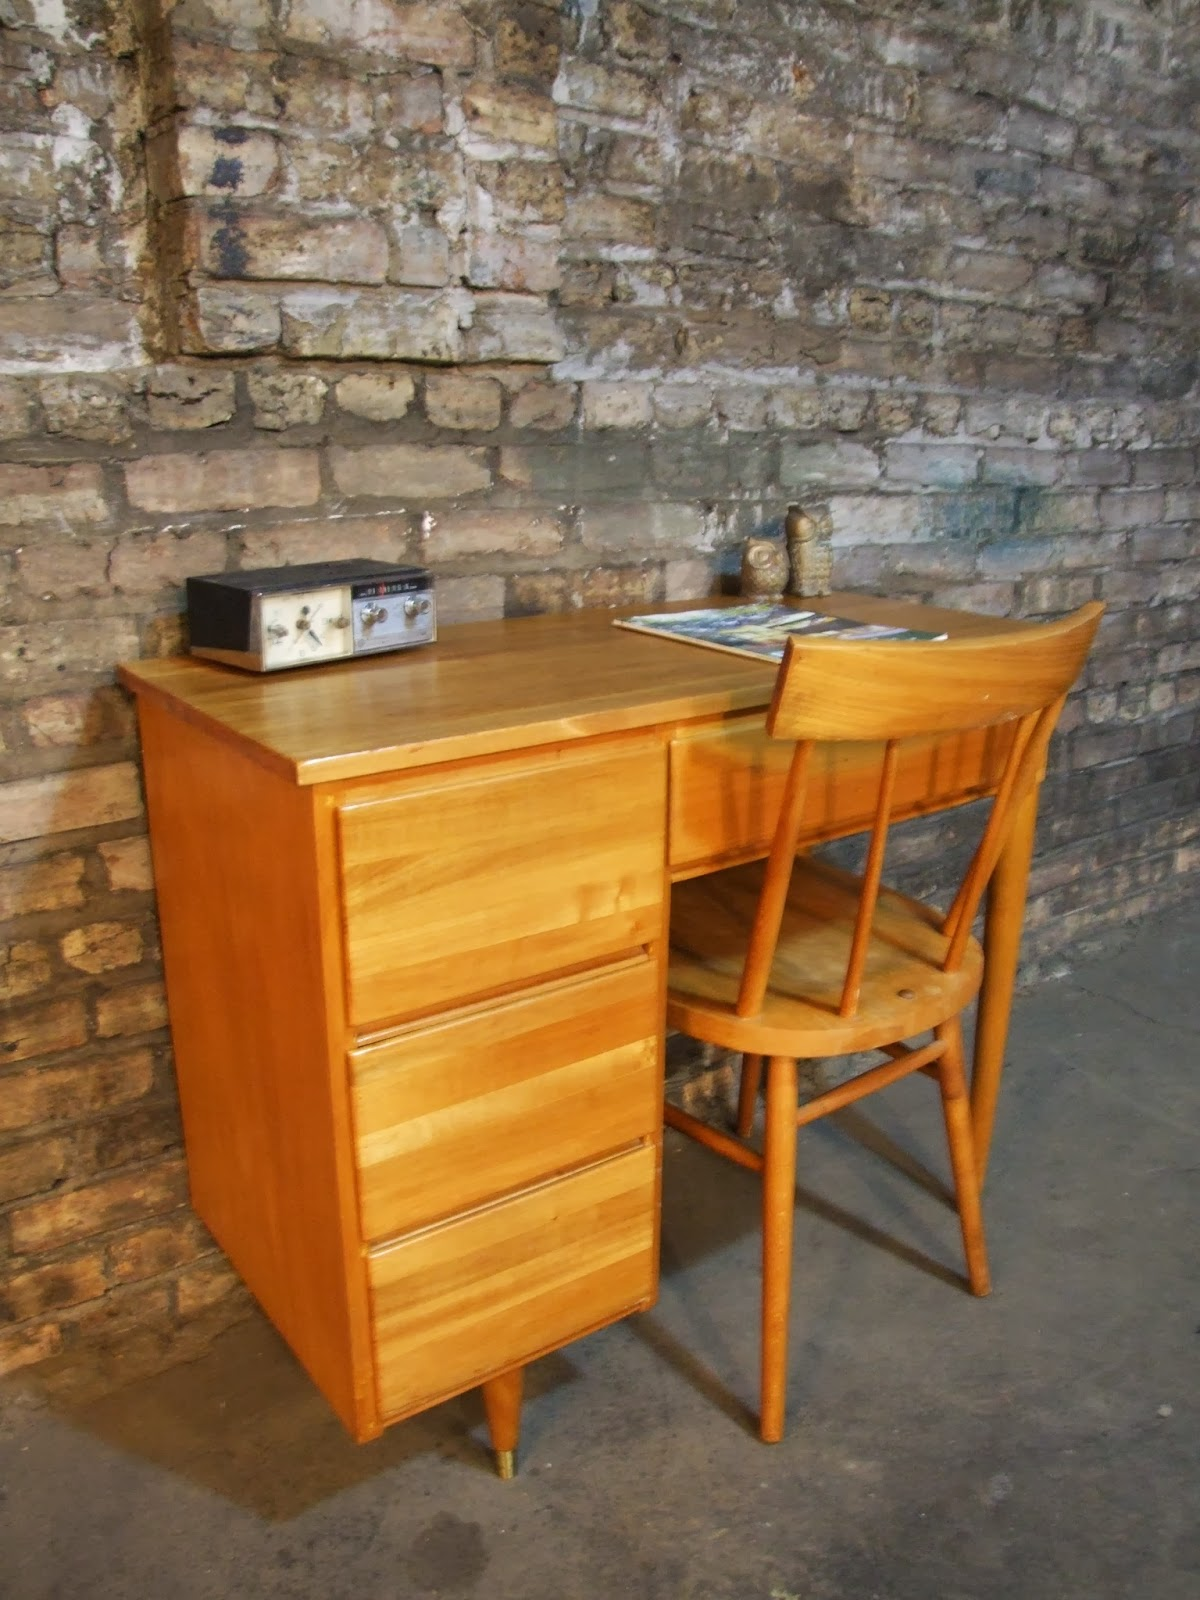 Broyhill Furniture Prices Mid Century Chicago: Small Scandinavian Desk & Chair